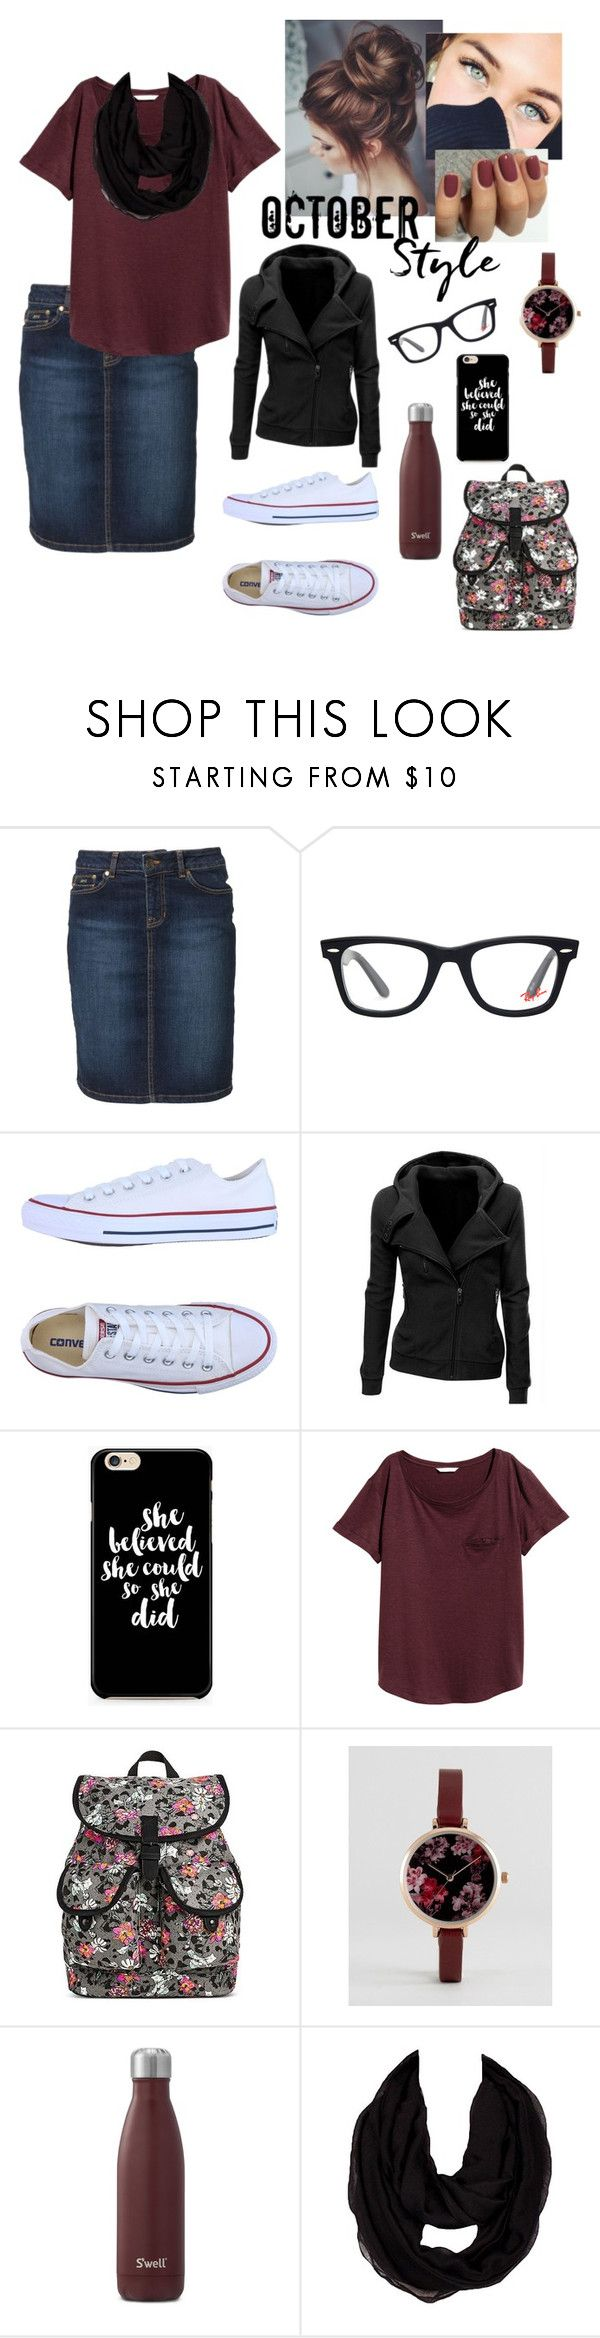 """High school~Thursday "" by wonderfullyme64 ❤ liked on Polyvore featuring McGregor, Ray-Ban, Converse, Caso, Dickies, ASOS and S'well"